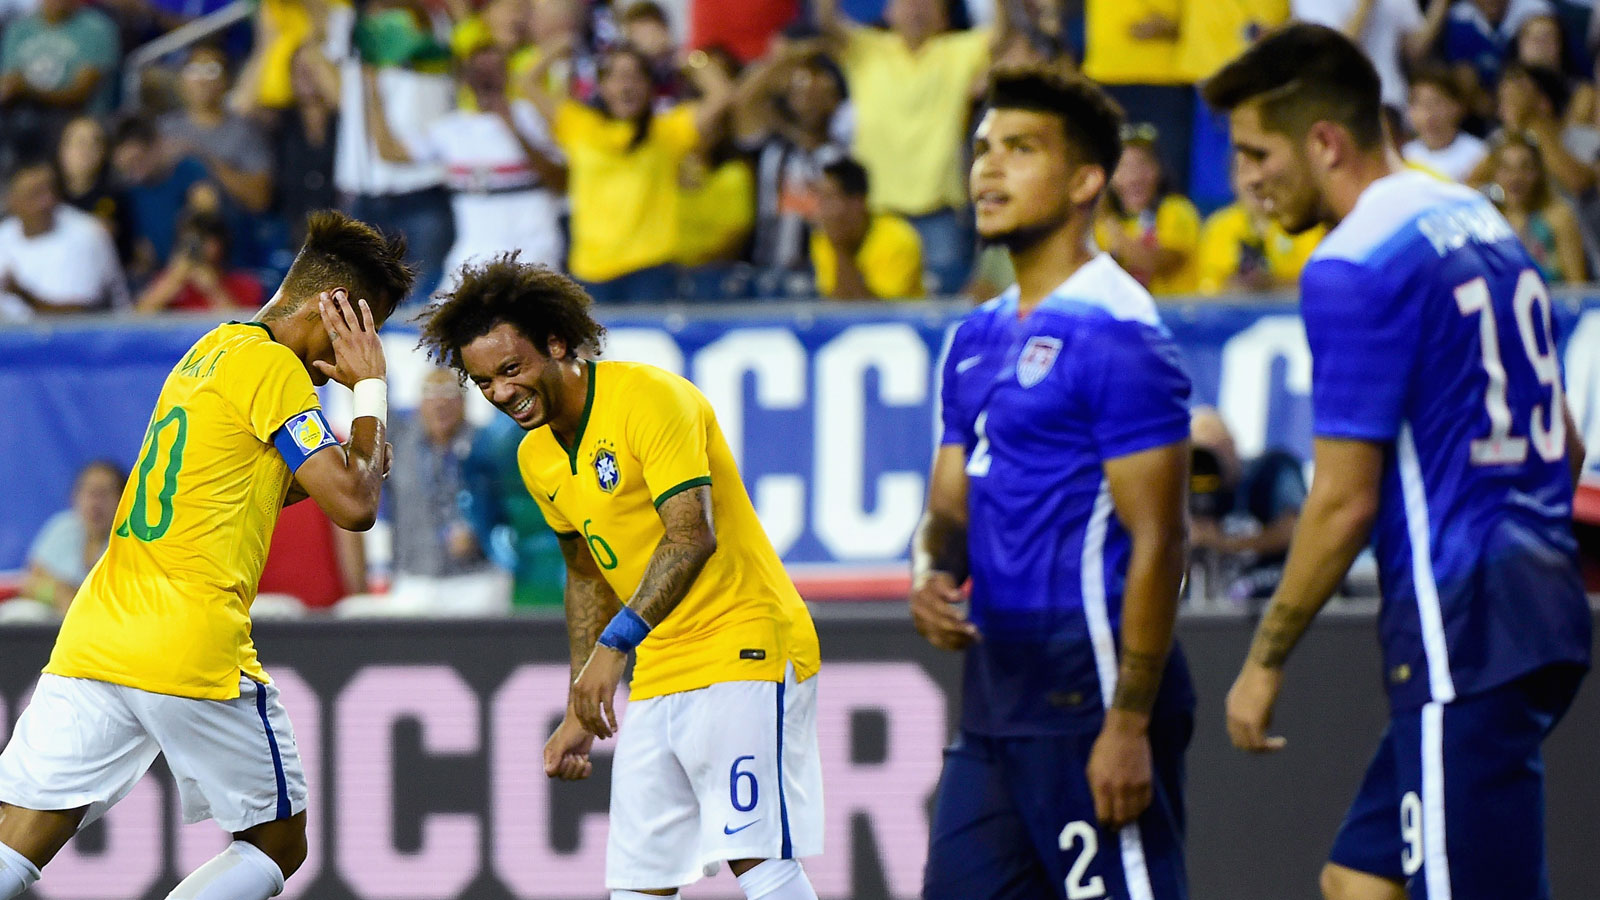 Neymar and Marcelo celebrate while DeAndre Yedlin and Ventura Alvarado look away in disgust during Brazil's 4-1 rout of the USA at Gillette Stadium.